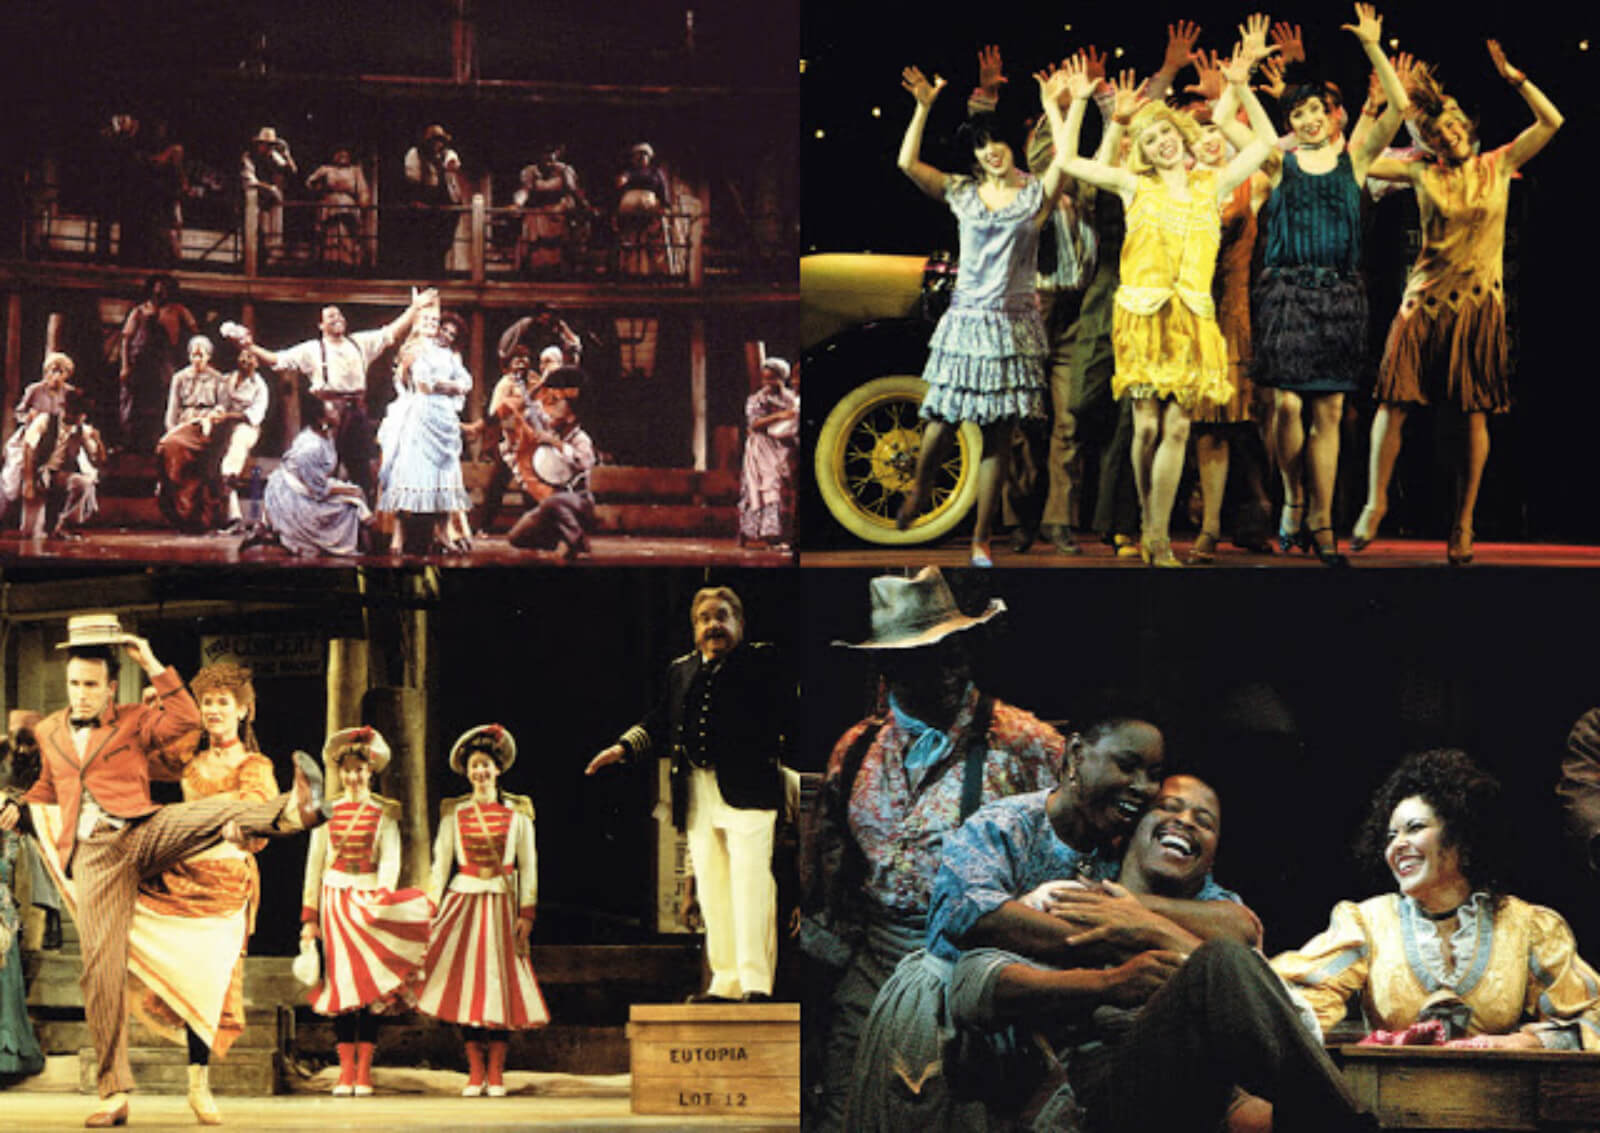 A collage of Charleston Ladies happily dancing in fancy outfits, with arms up in the air, alongside other artists celebrating life in different ways — one is through a simple embrace; another through joyous banjo performances.